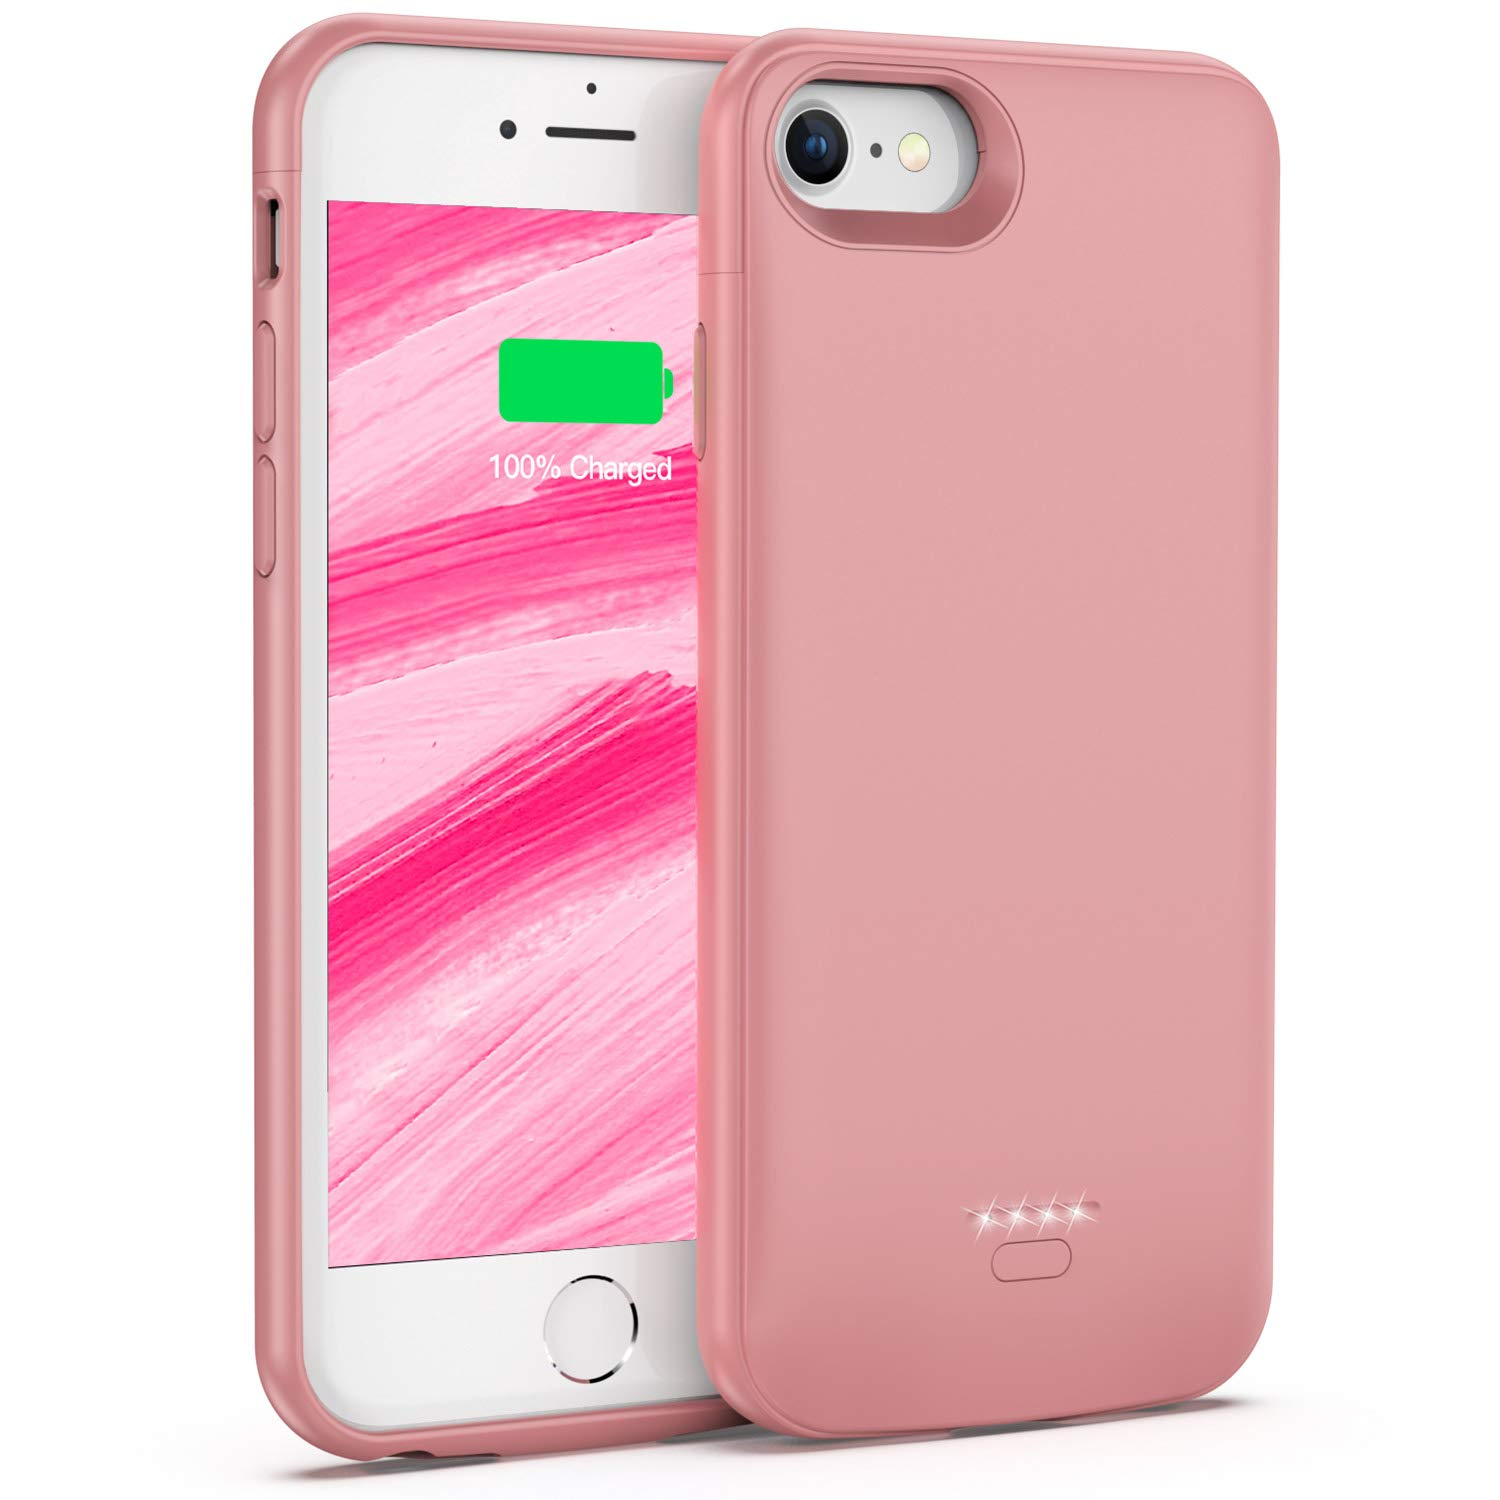 newest 8aa8b 6a72e Battery Case for iPhone 6 6s, 4000mAh Portable Protective Charging Case for  iPhone 6 6s(4.7 inch), Extended Battery Charger Case